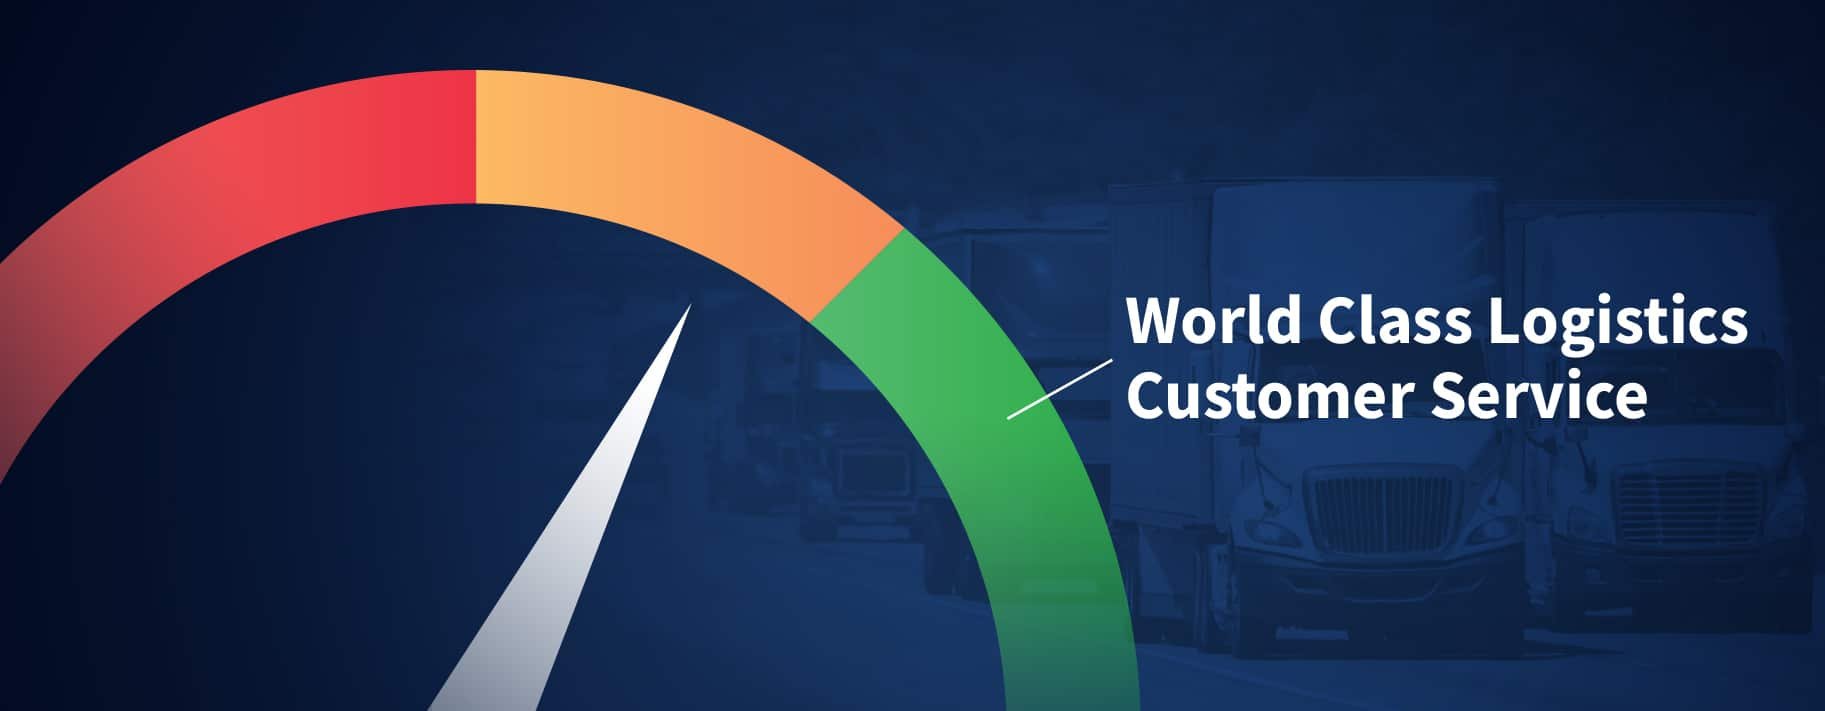 "What ""World Class"" Logistics Customer Service Should Look Like"